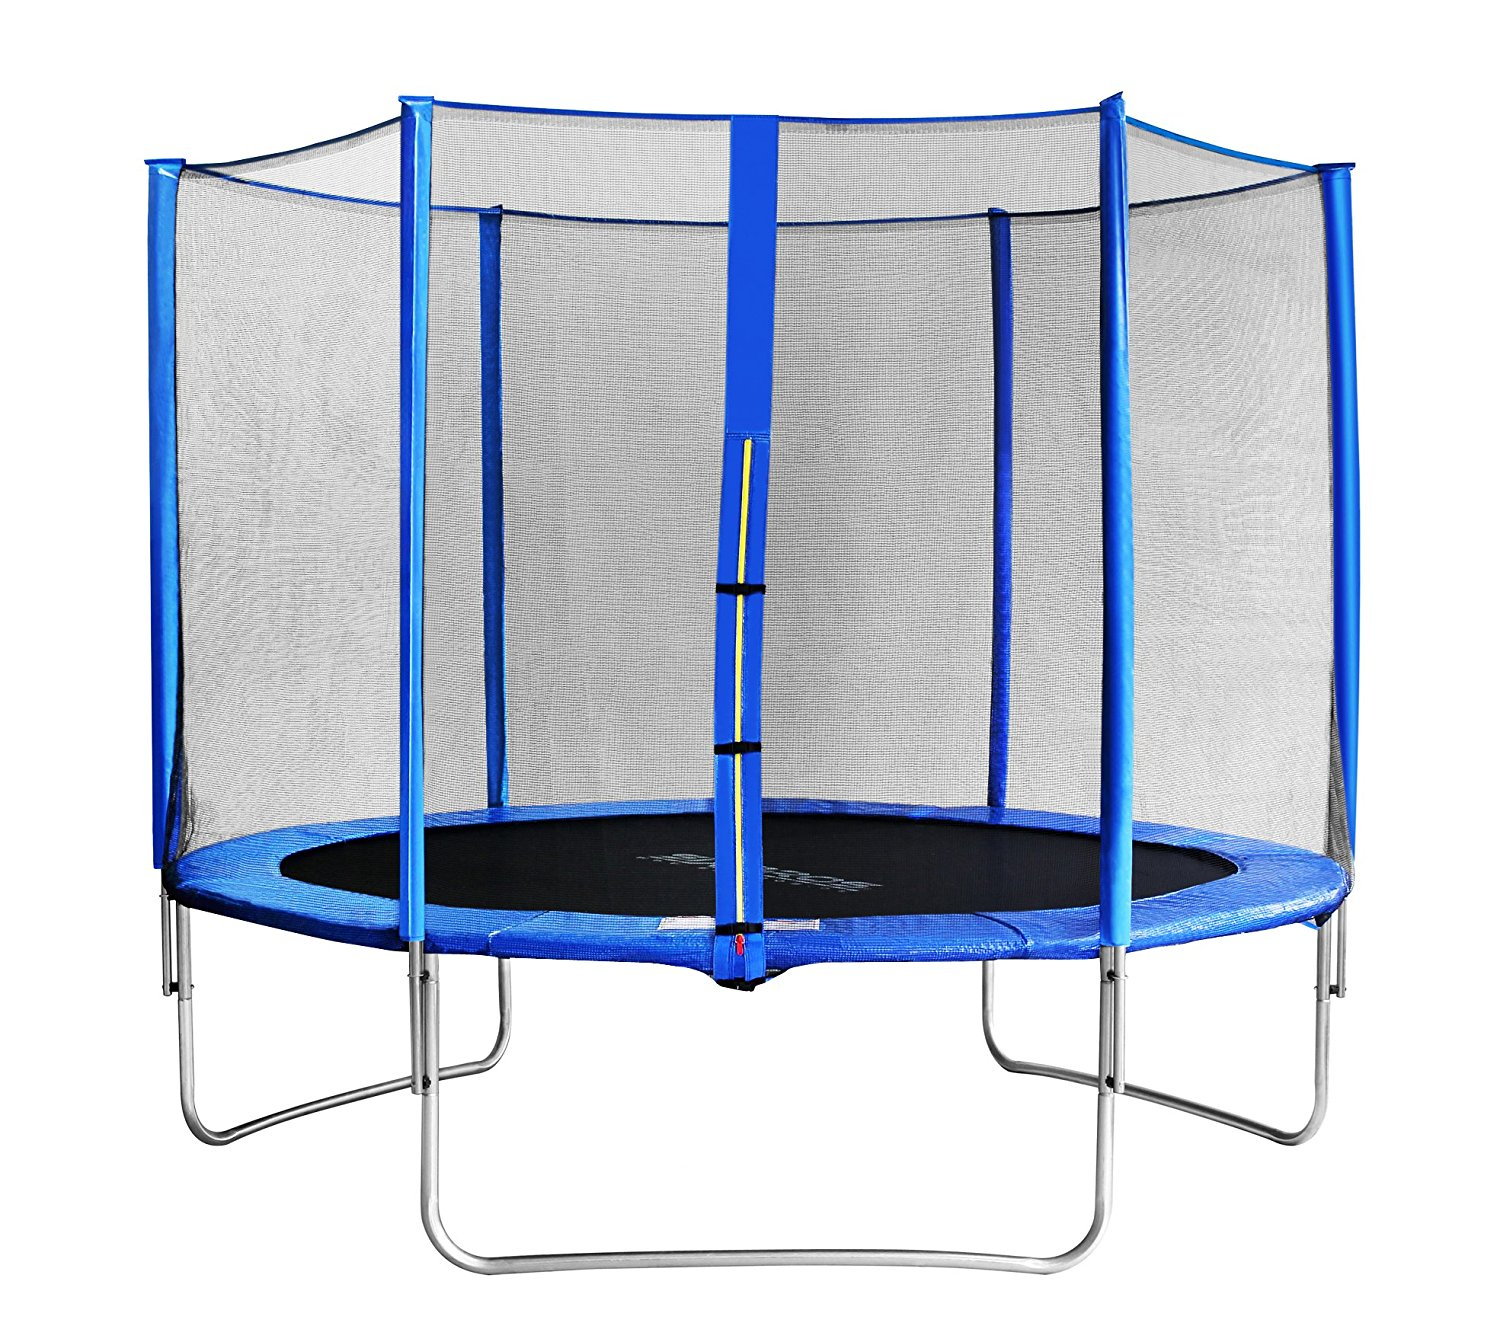 prix d un trampoline trampoline ls t400 pa13 lifestyle proaktiv meilleur trampoline de jardin. Black Bedroom Furniture Sets. Home Design Ideas